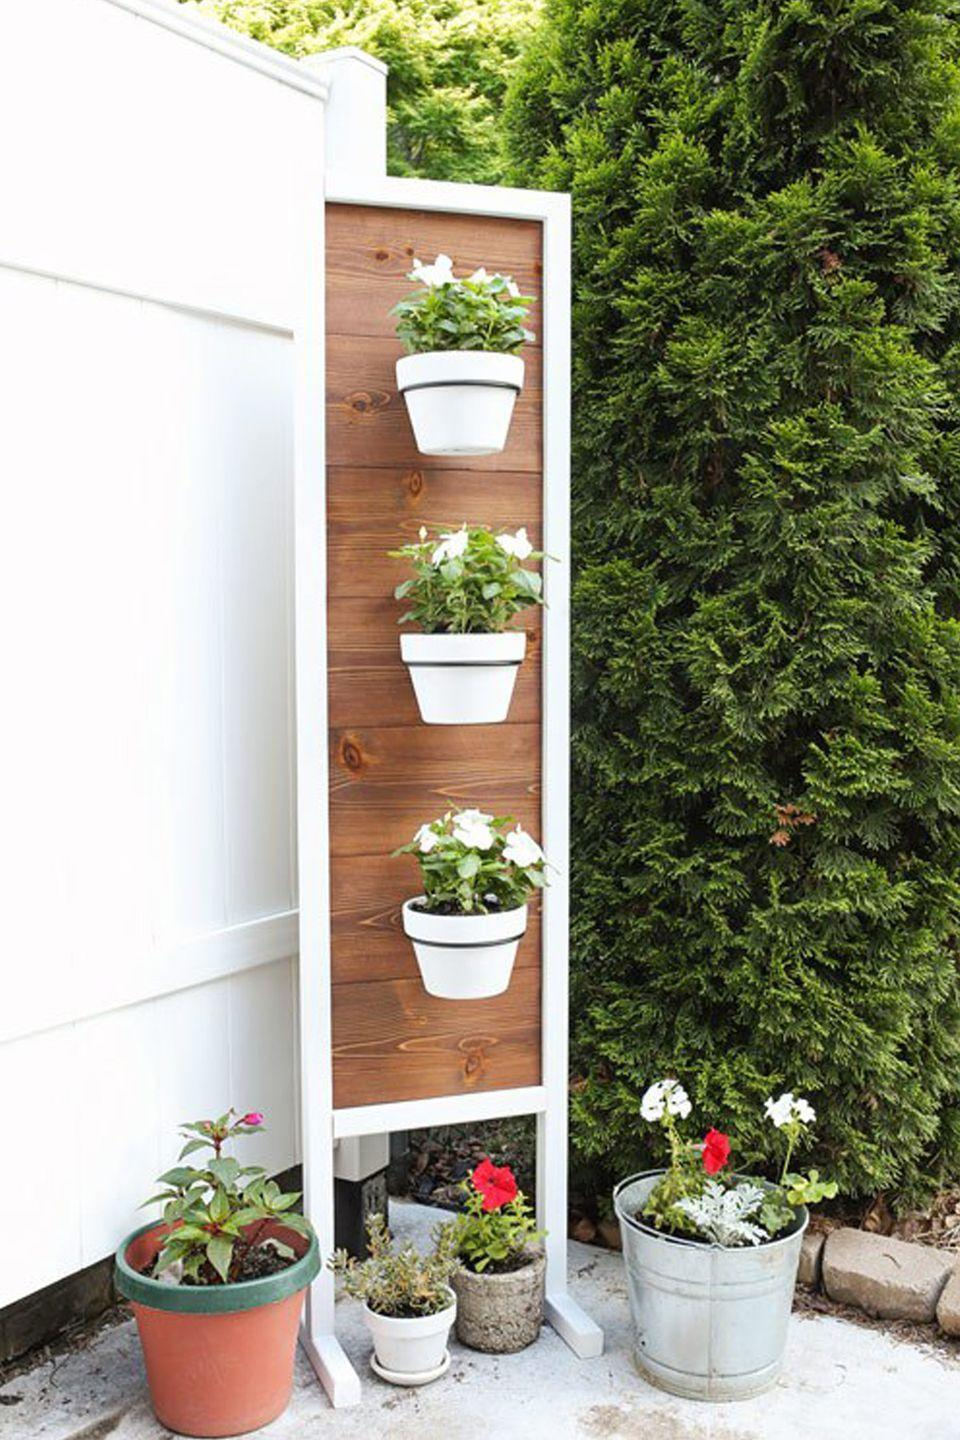 "<p>Not only does this DIY take up less surface area than multiple pots on the ground would, but it can also serve as a privacy fence for nosy neighbors. </p><p><em><a href=""https://angelamariemade.com/2017/06/diy-vertical-planter-stand/"" rel=""nofollow noopener"" target=""_blank"" data-ylk=""slk:Get the tutorial at Angela Marie Made »"" class=""link rapid-noclick-resp"">Get the tutorial at Angela Marie Made »</a></em></p>"